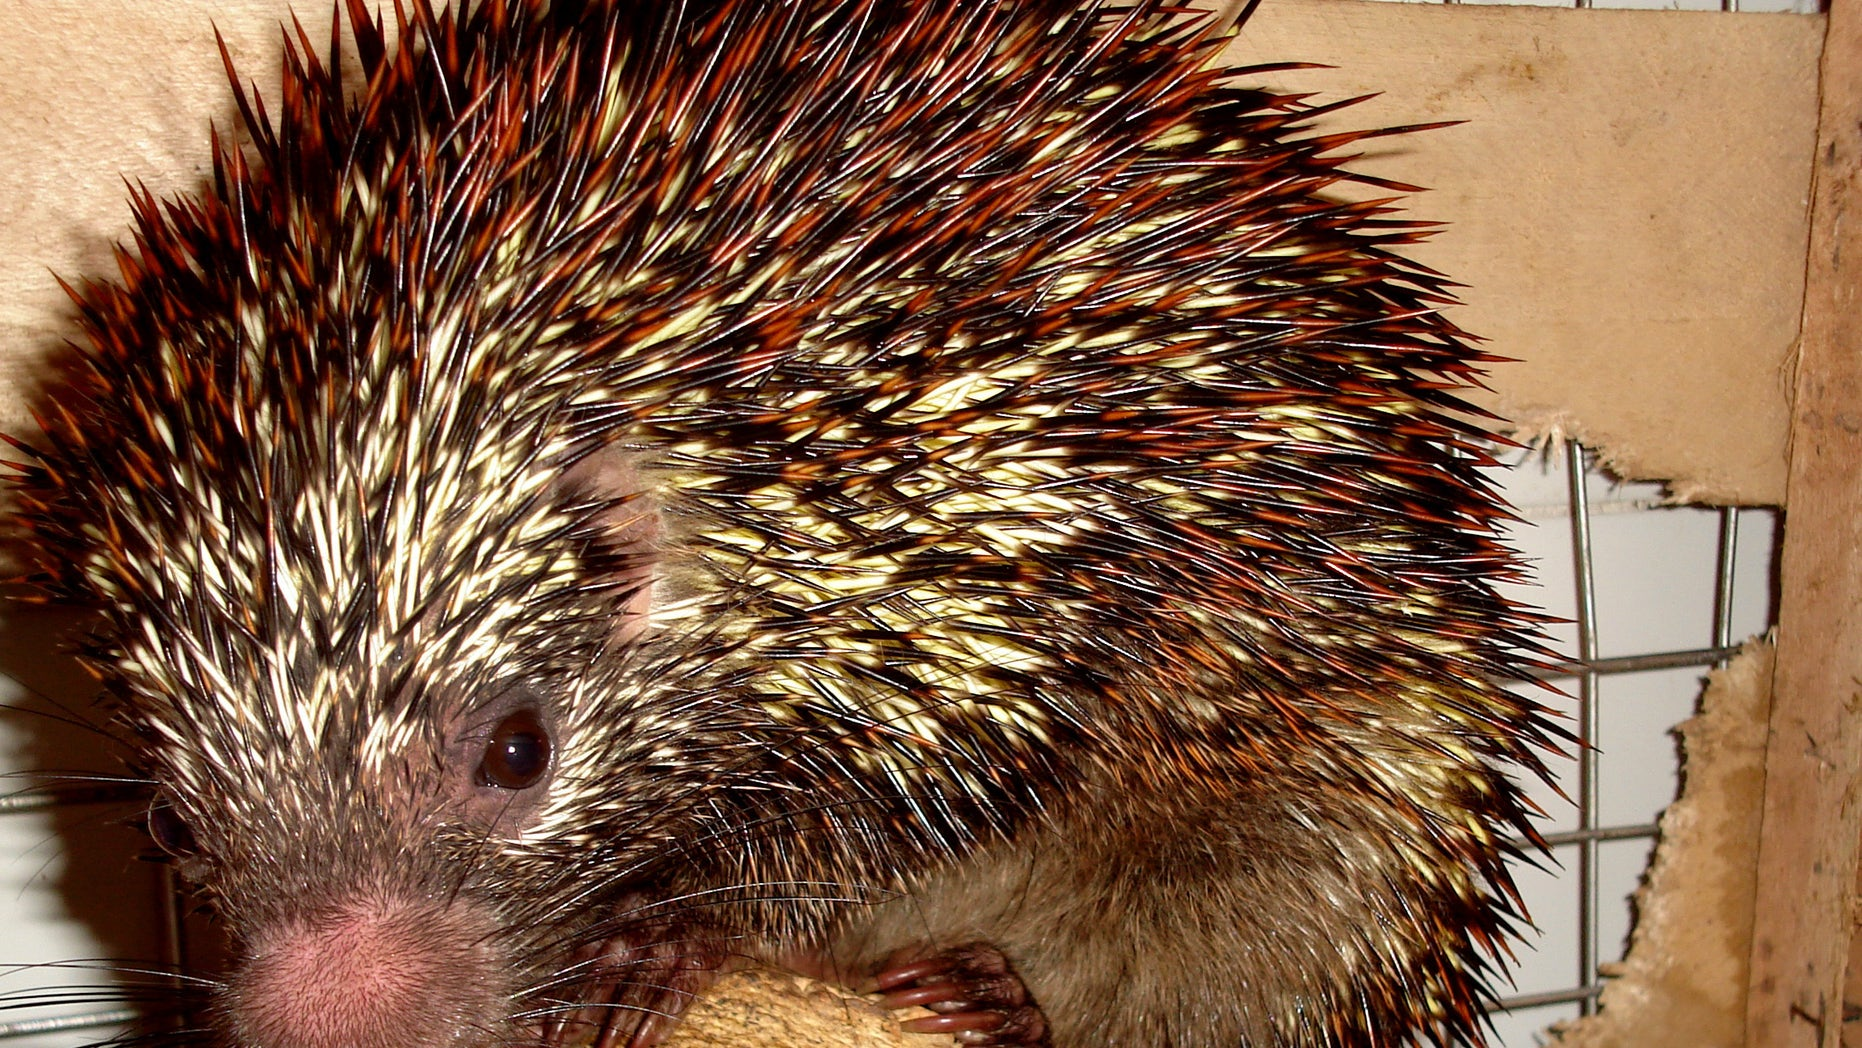 "This March 15, 2009 photo released on April 10, 2013 by Universidade Federal de Pernambuco, shows a new species of the porcupine ""Coendou speratus,"" in Pernambuco, Brazil. Brazilian researchers say they found the tree-dwelling rodent in a small and isolated fragment patch of forest in the northeastern state of Pernambuco. With just 2 % of the region's original forest habitat still standing, the new porcupine must be considered to be endangered said Antonio Rossano Mendes, a zoology professor at the Federal University of Pernambuco and part of the team who discovered the new species. (AP Photo/Universidade Federal de Pernambuco, Antonio Rossano Mendes)"